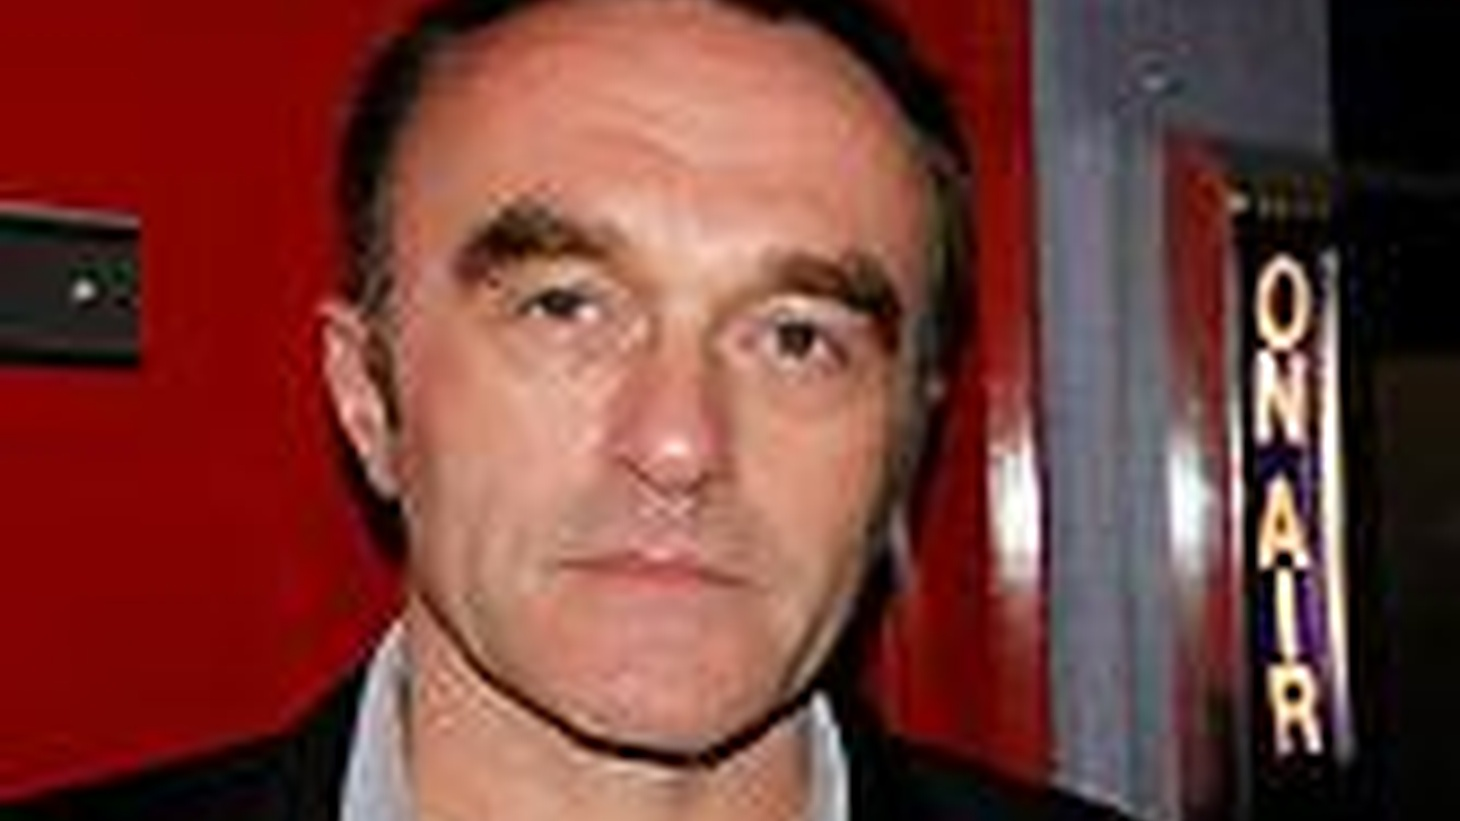 Tension and home play a key part in the work of director Danny Boyle. From Trainspotting, Shallow Grave and 28 Days Later to his latest, Sunshine, he discusses the connections.